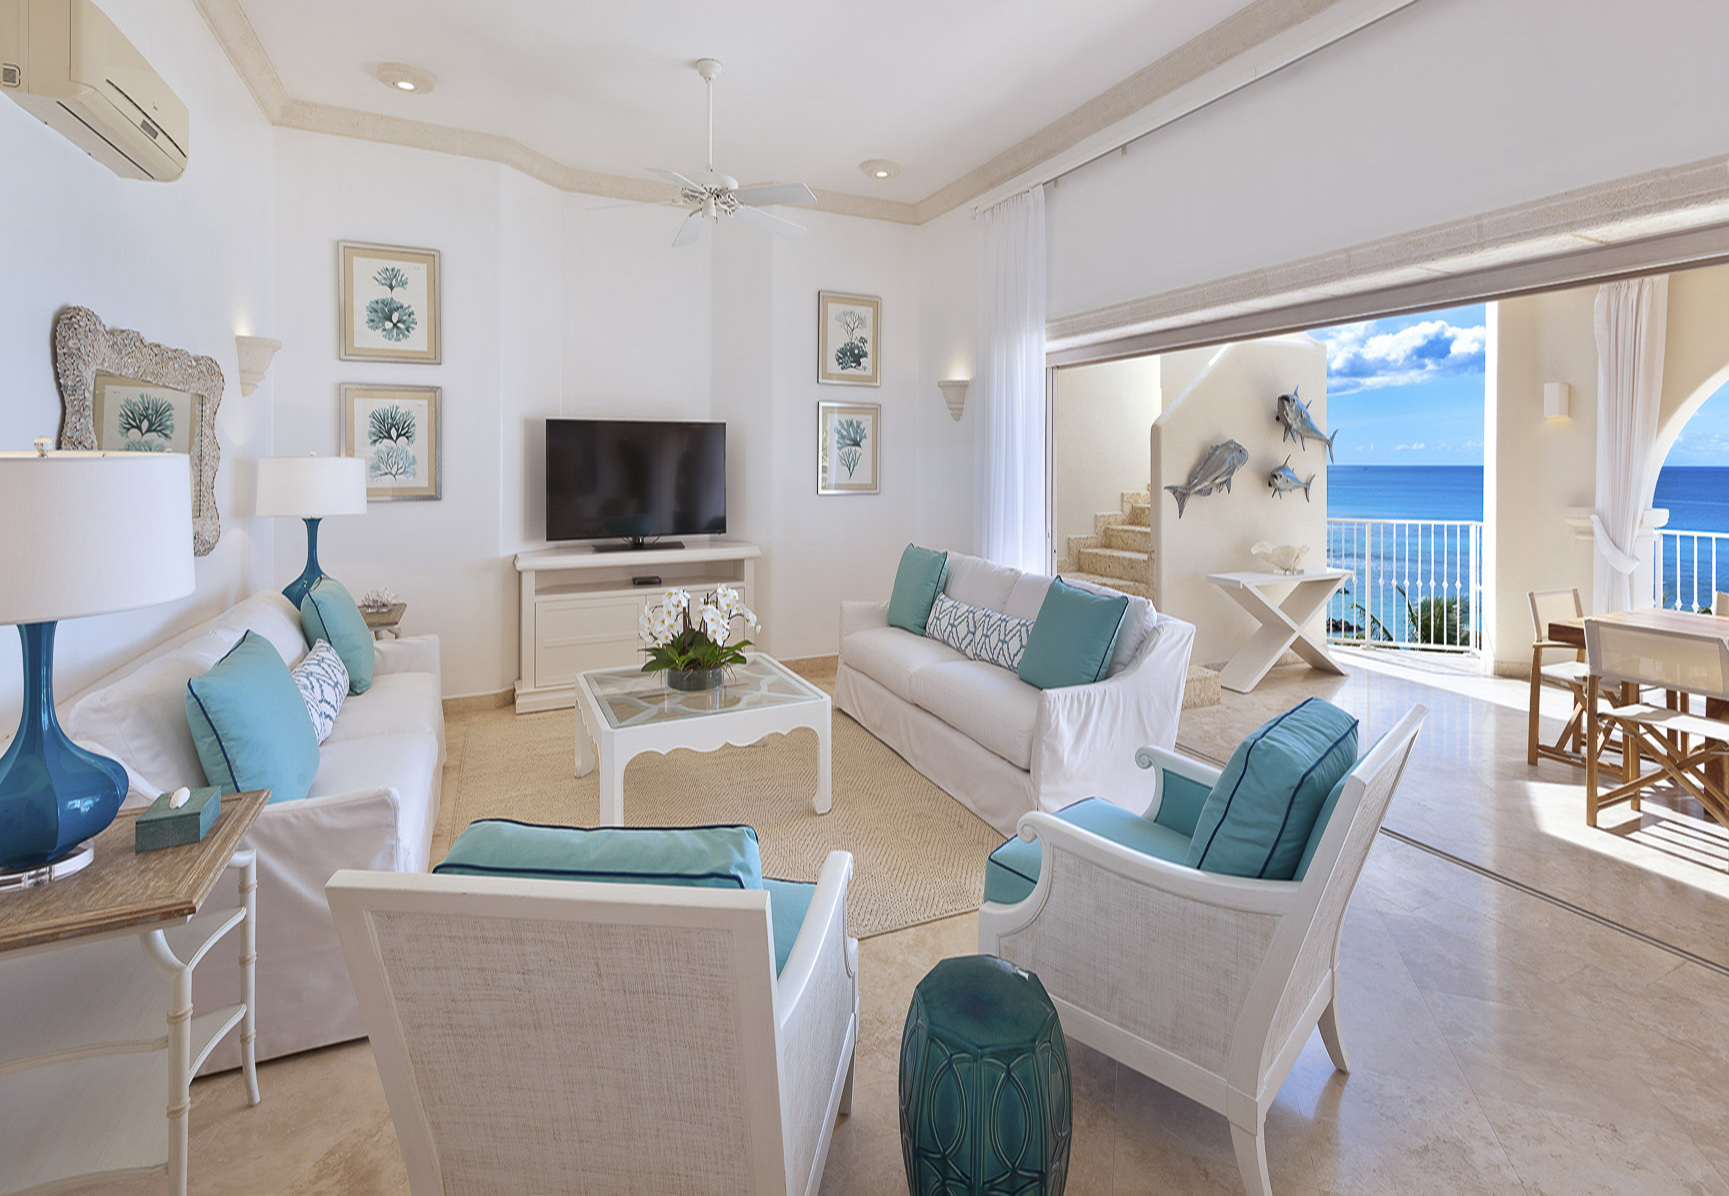 Moderne living, 10 personen, penthouse, Barbados